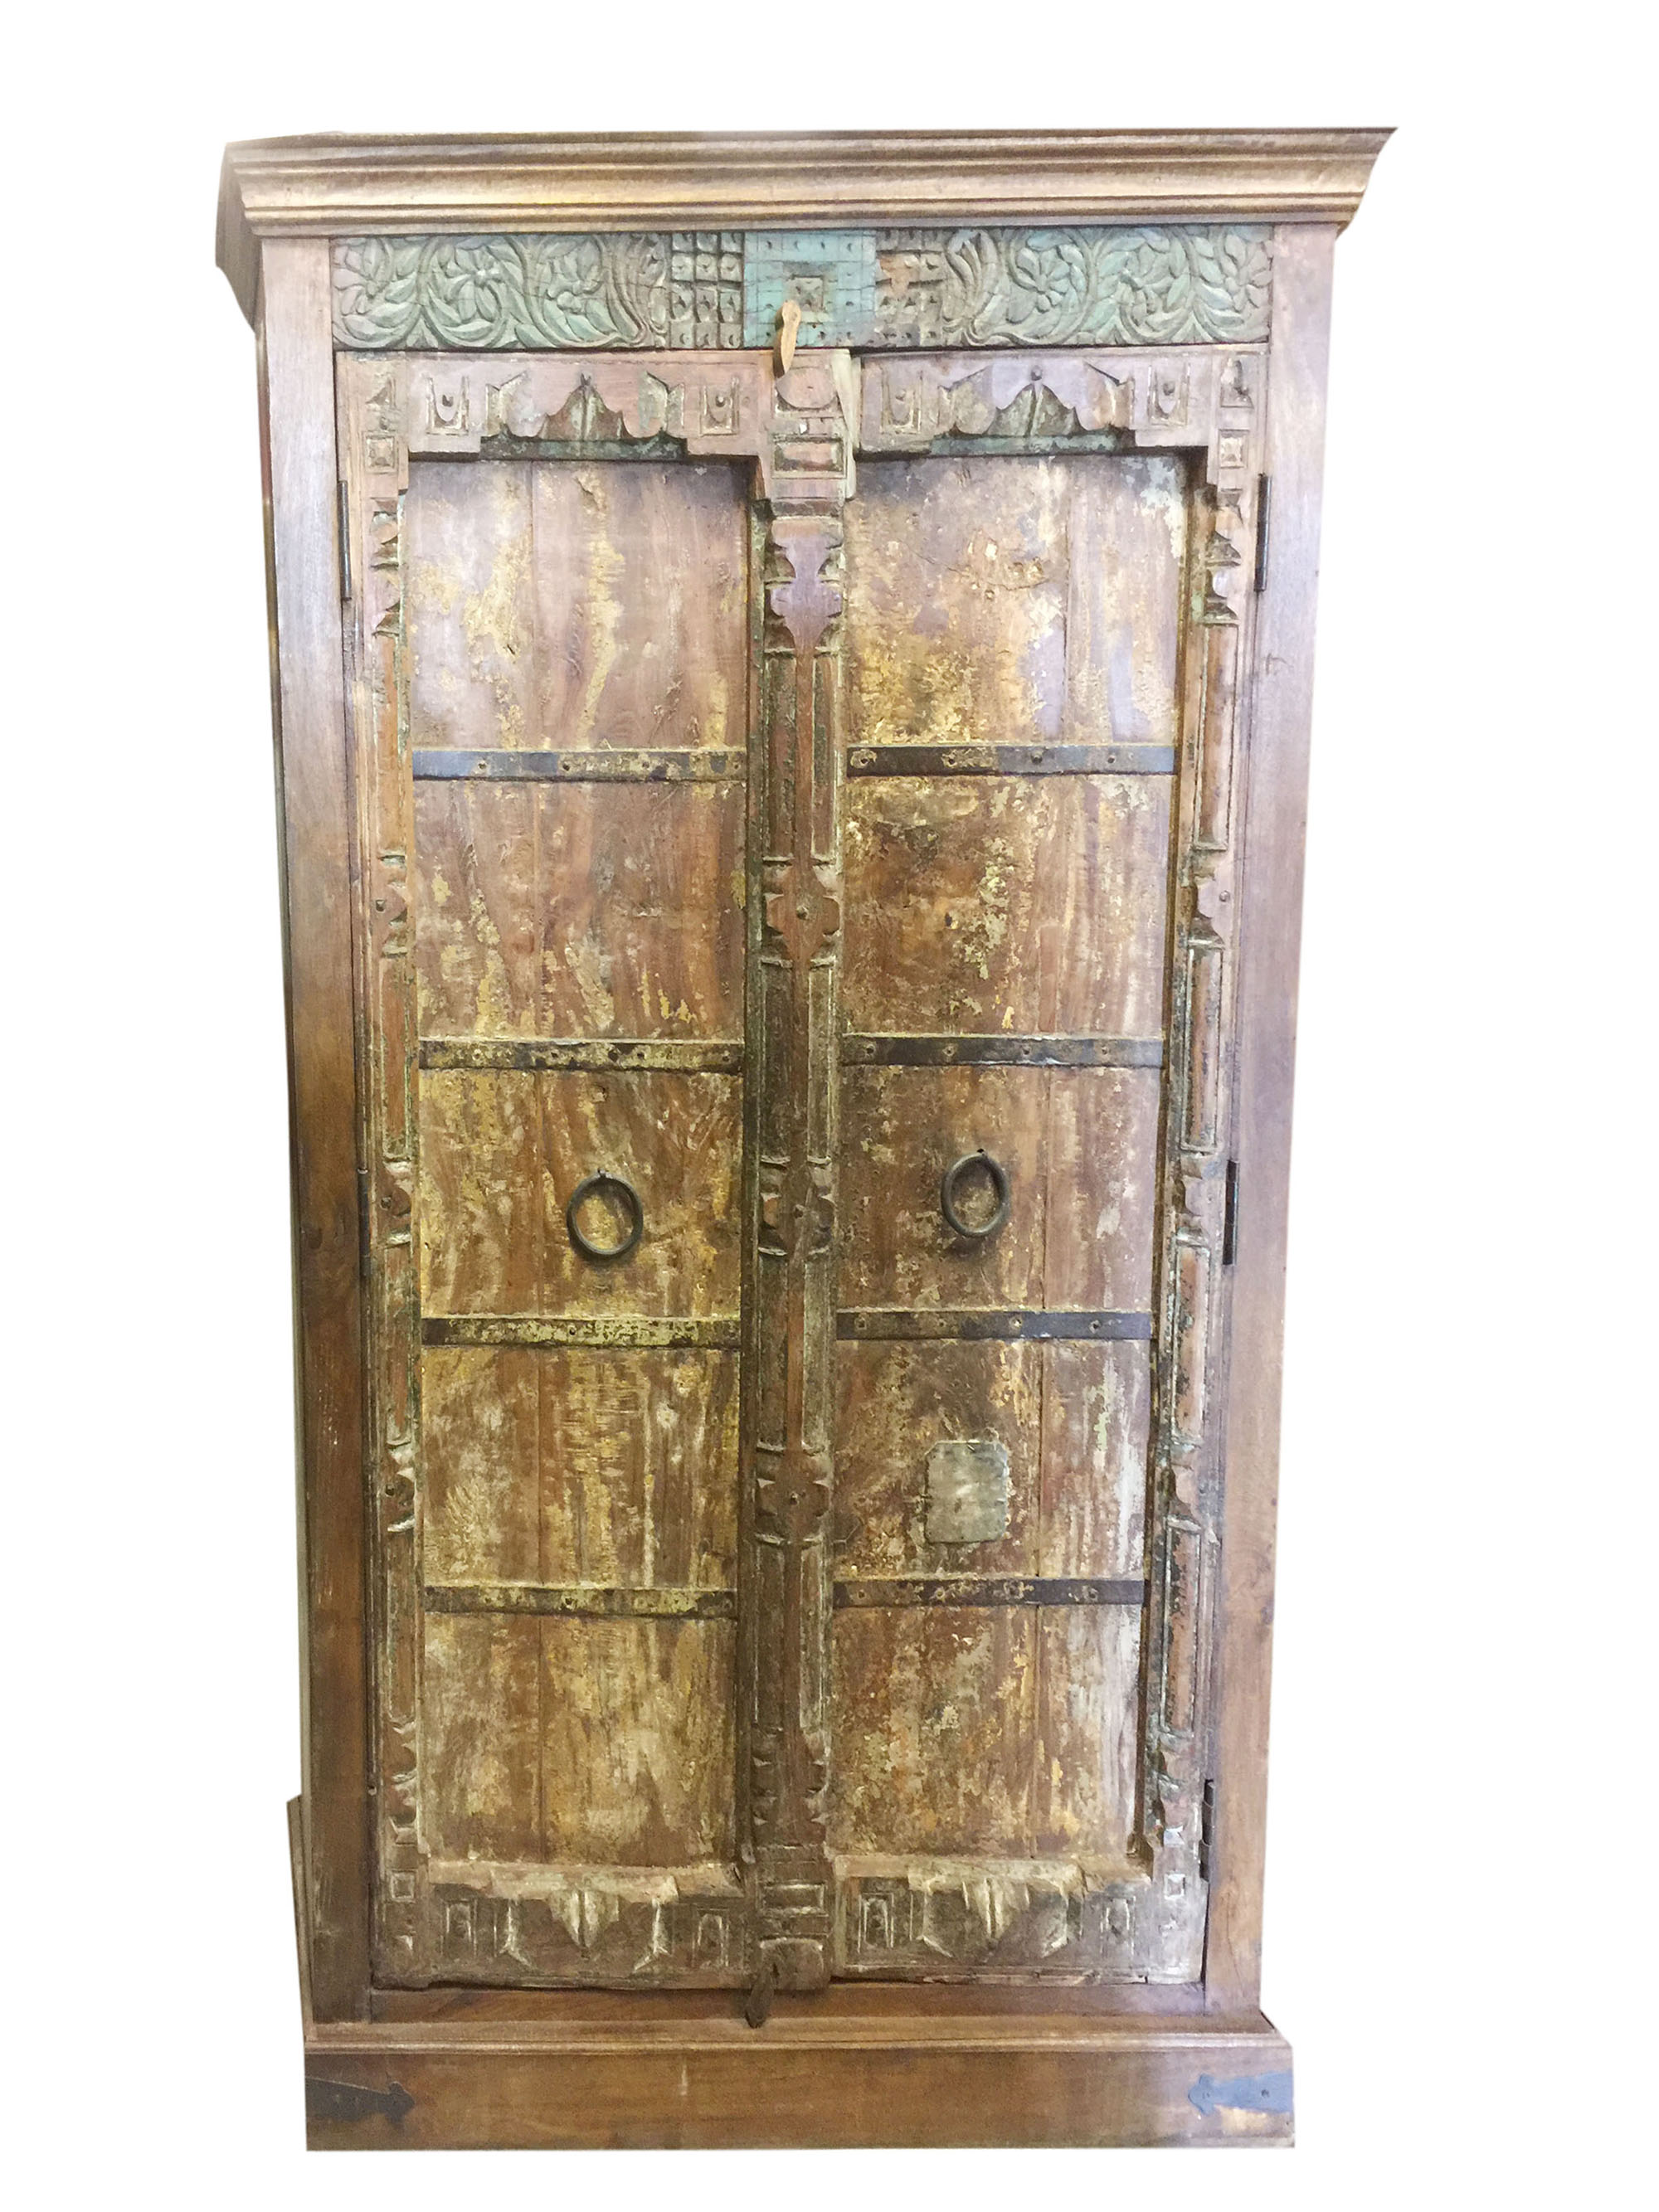 Mogul Indian Antique Armoire Old Doors Rustic Furniture Iron Storage  Cabinet Vintage Shabby Chic Decor